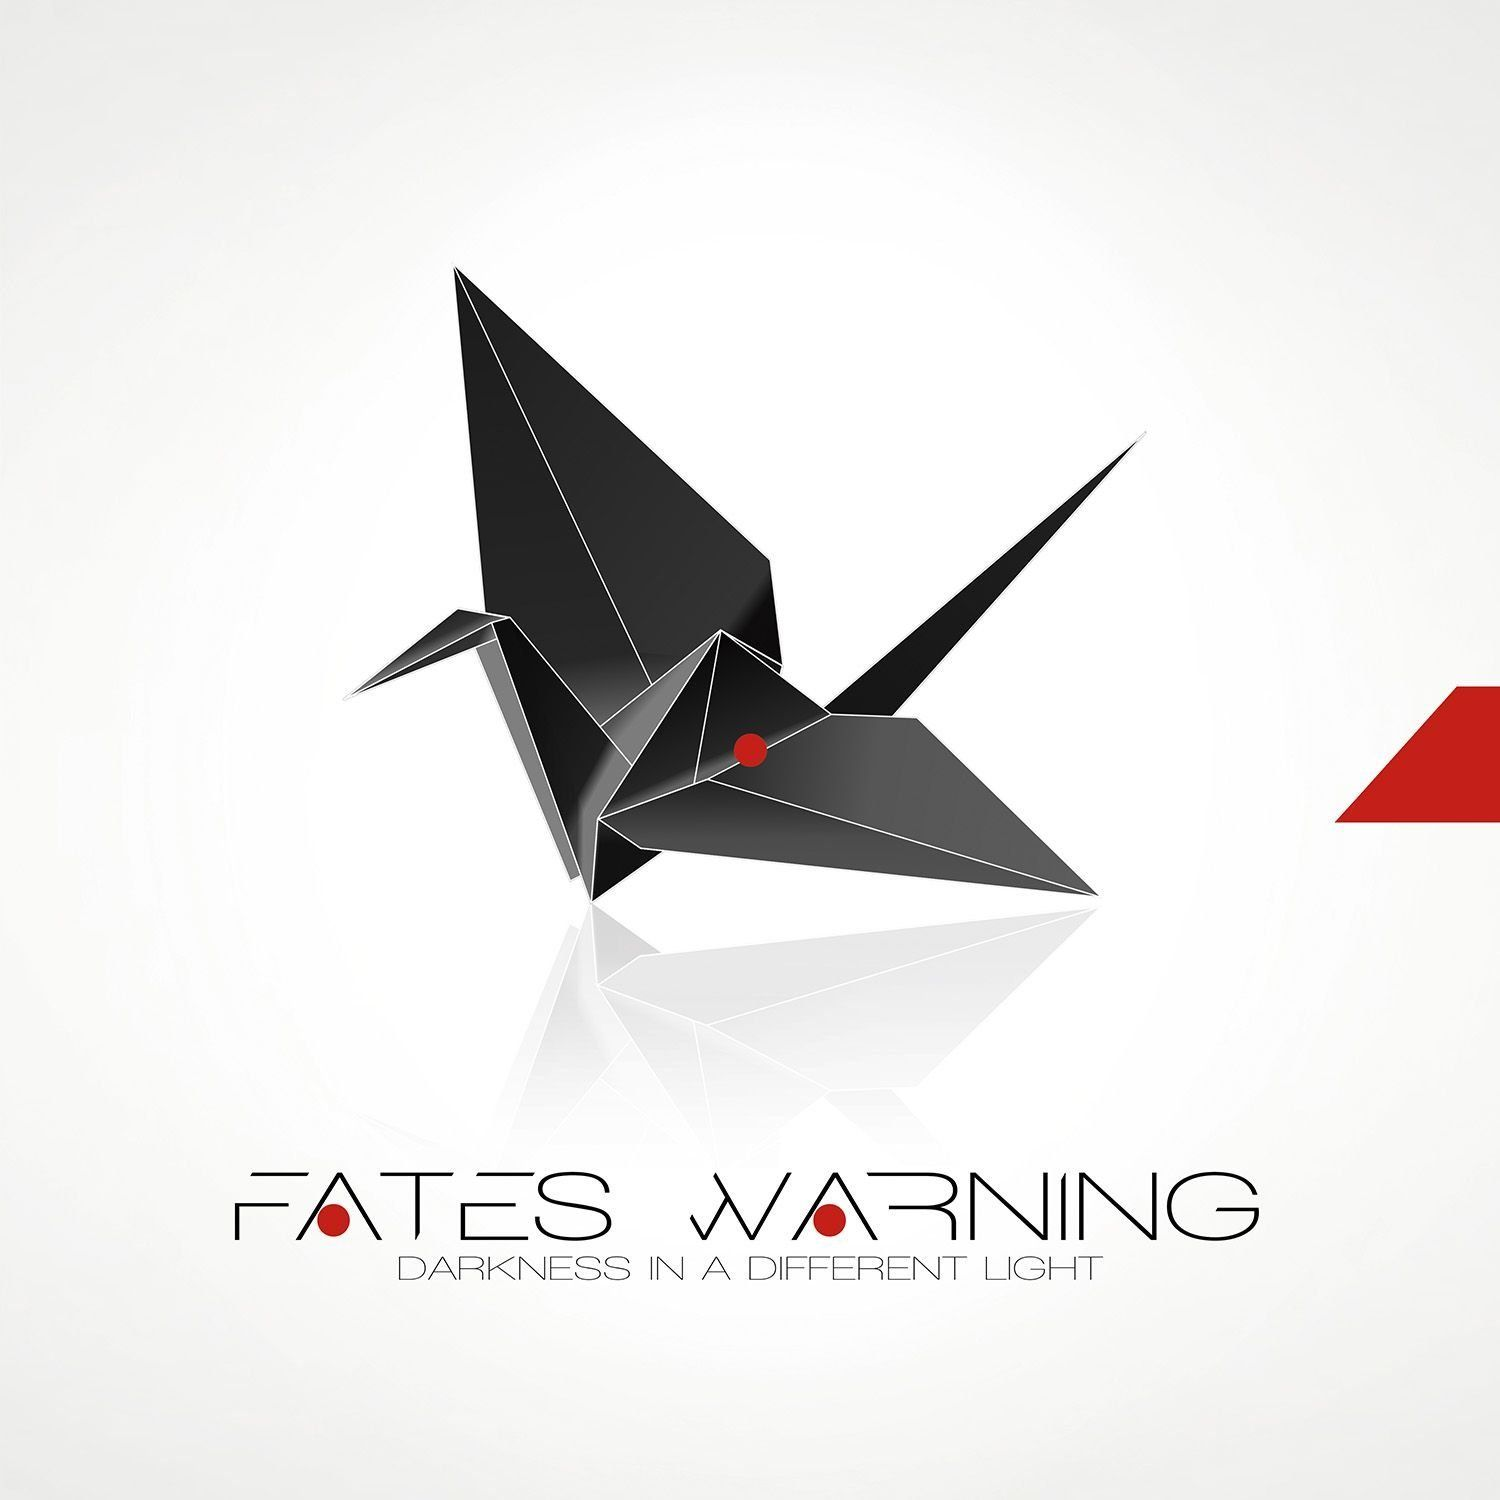 Fates Warning - Darkness In A Different Light album cover